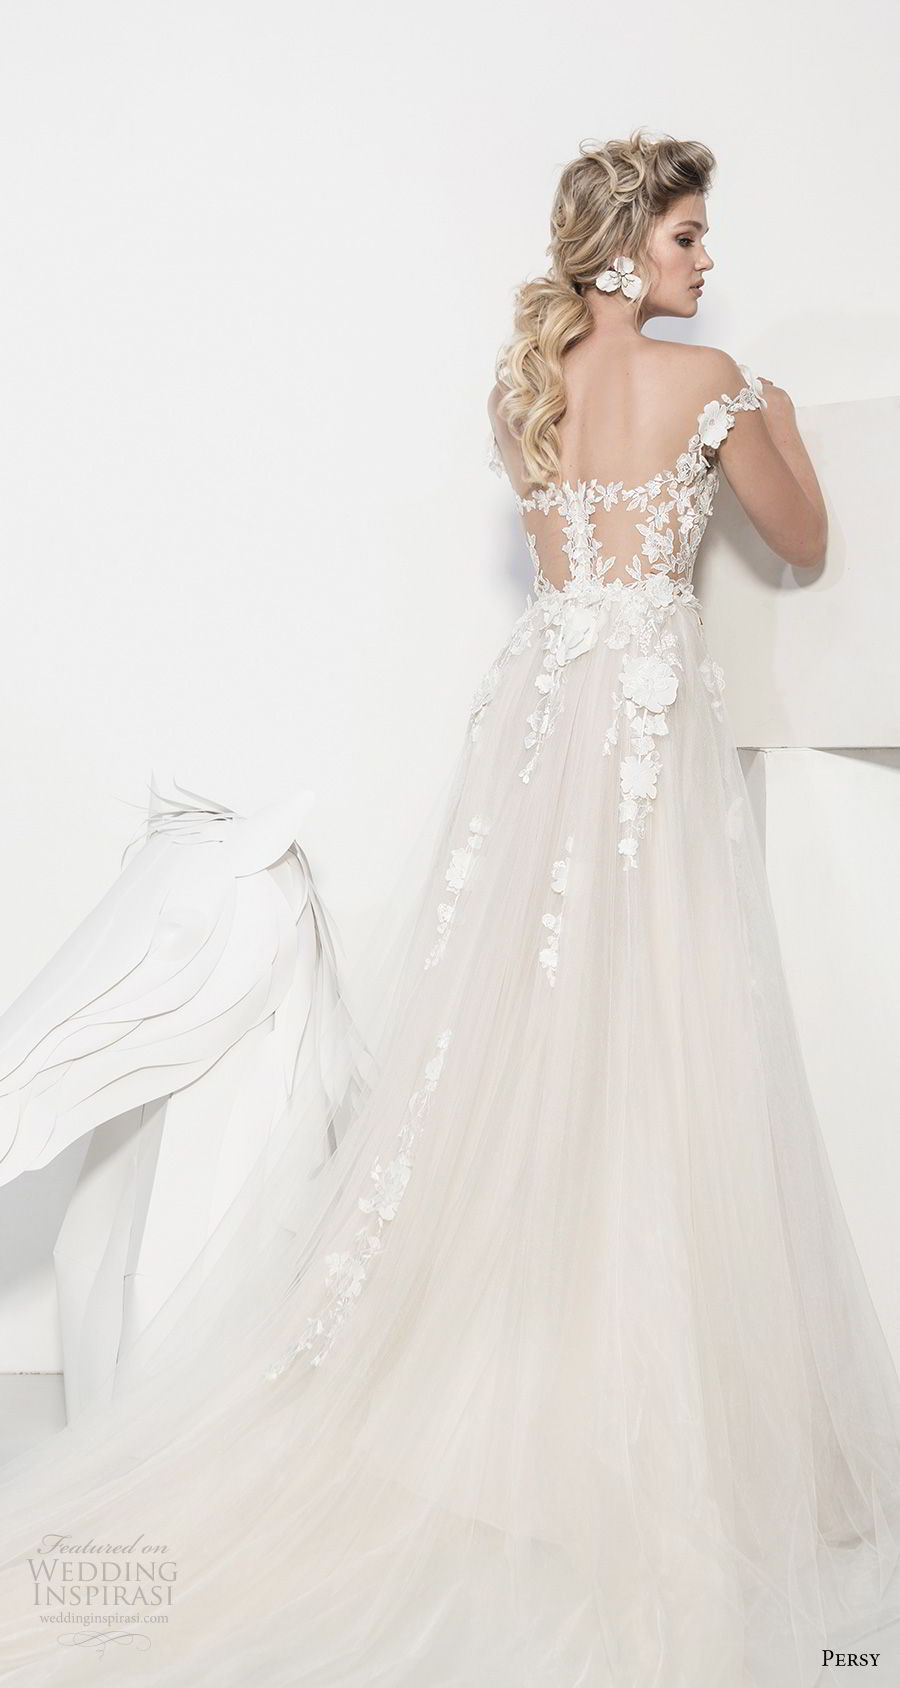 persy couture 2019 bridal cap sleeves sweetheart neckline heavily embellished bodice romantic champagne soft a line wedding dress chapel train (7) bv